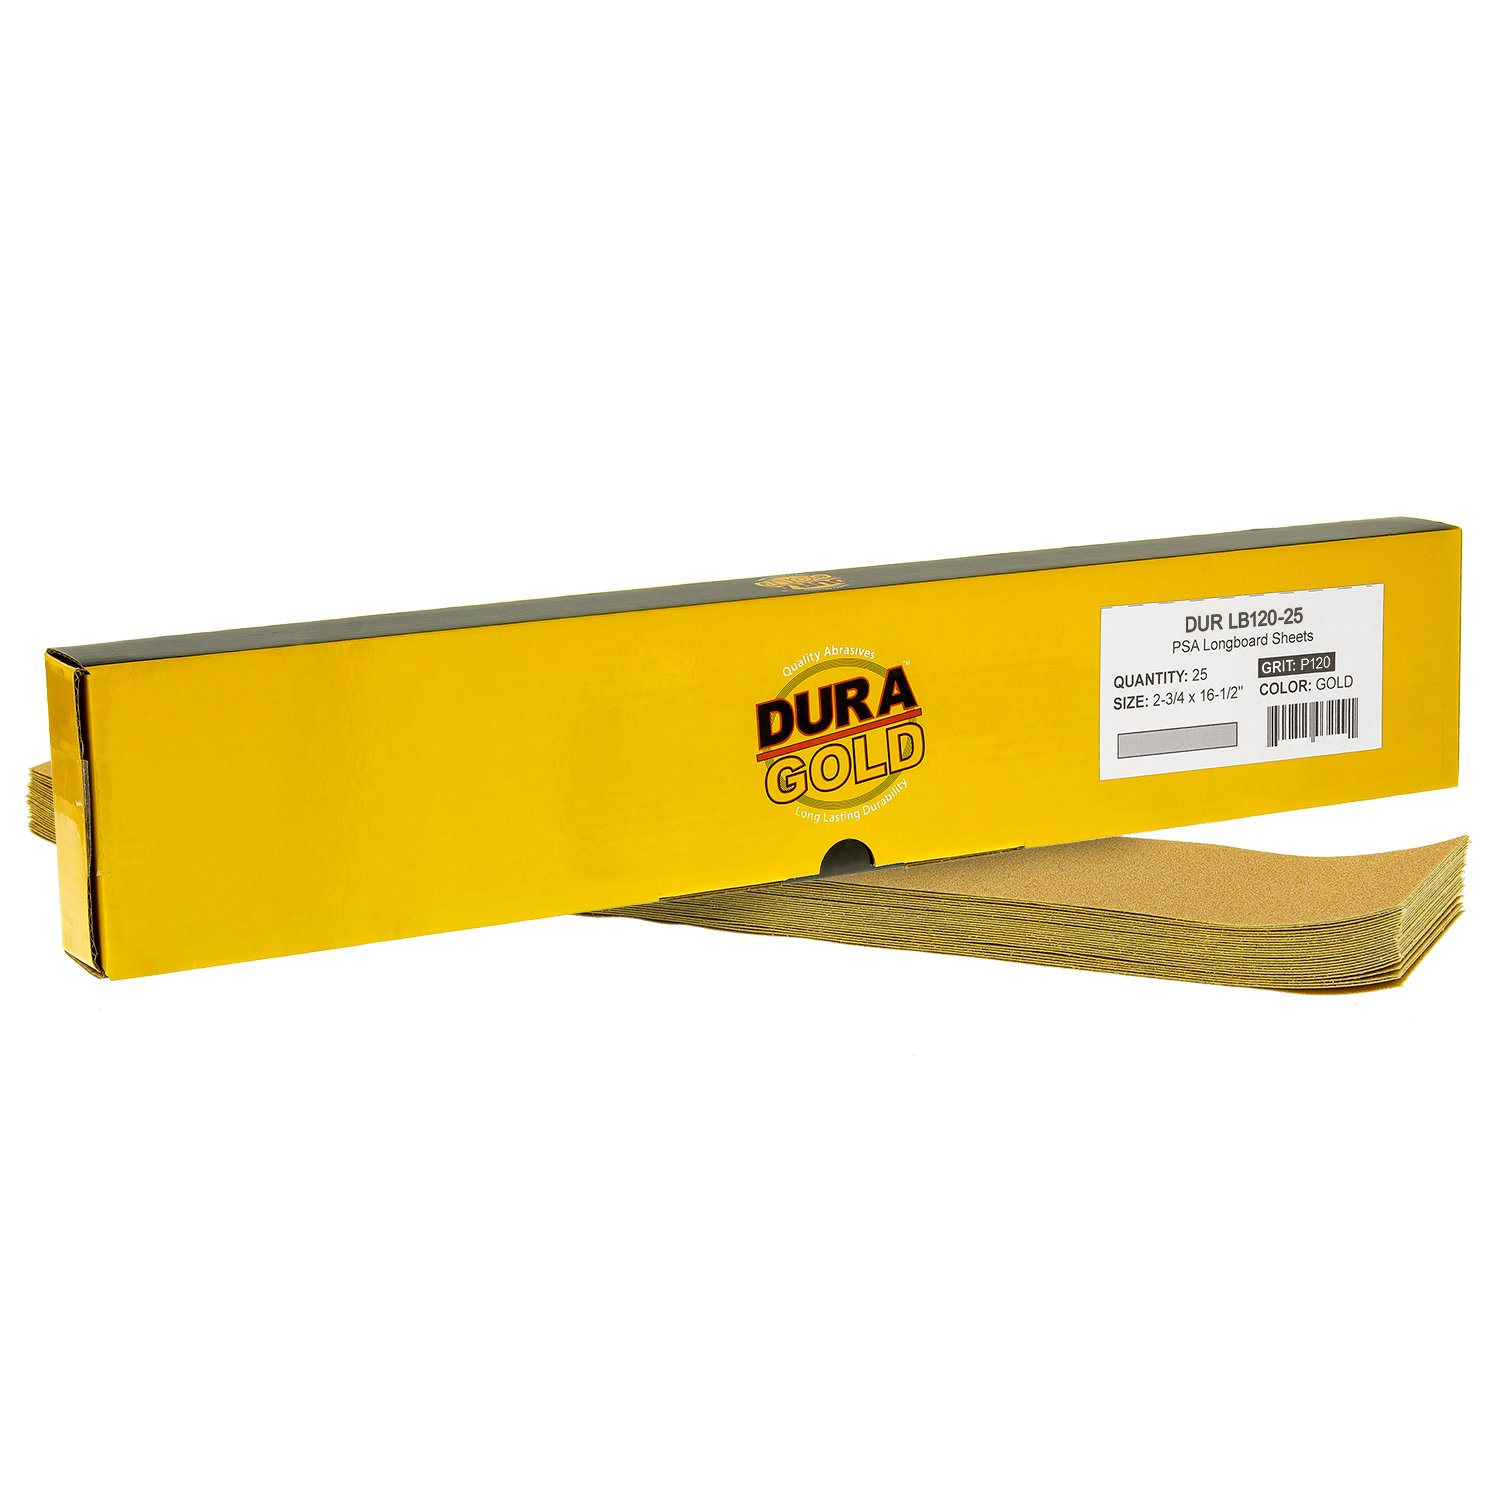 Dura-Gold - Premium - 120 Grit Gold - Pre-Cut Longboard Sheets 2-3/4'' wide by 16-1/2'' long - PSA Self Adhesive Stickyback Longboard Sandpaper - Box of 25 Sandpaper Finishing Sheets